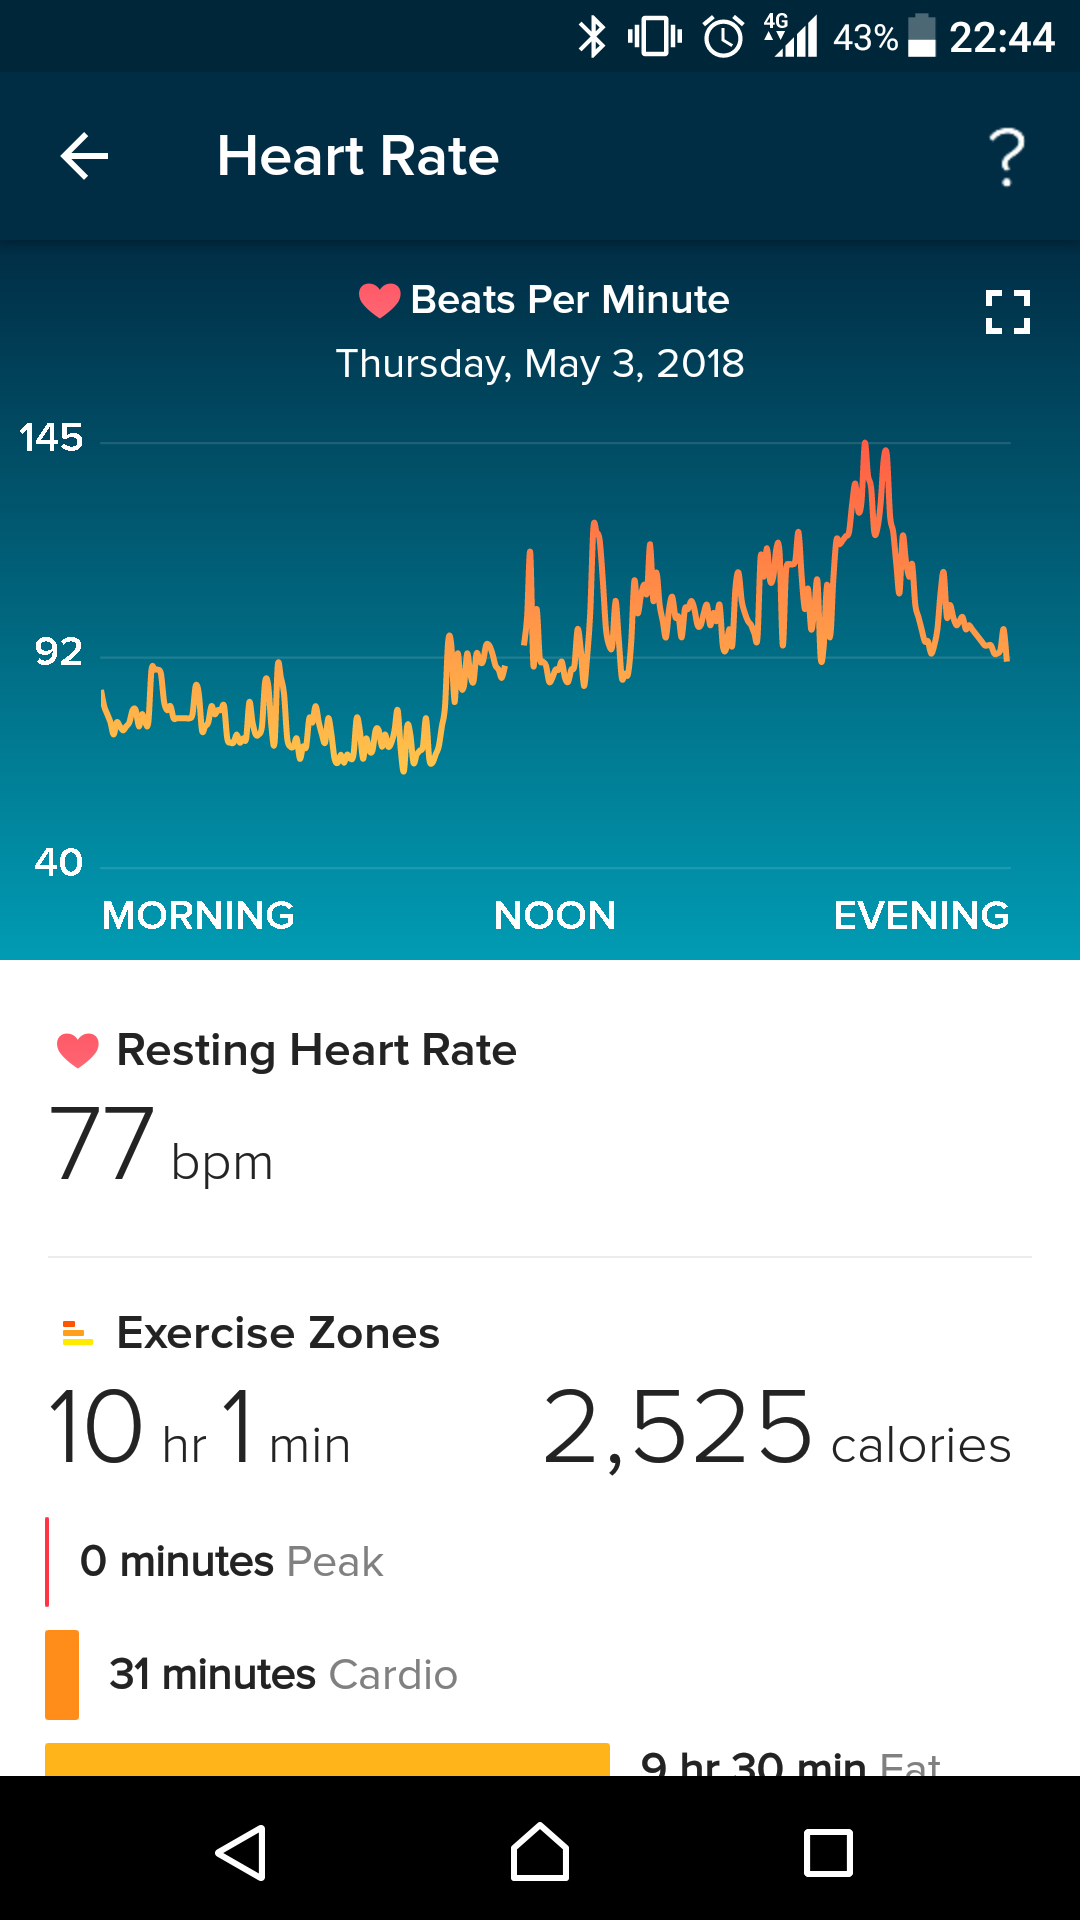 Heart rate across the day